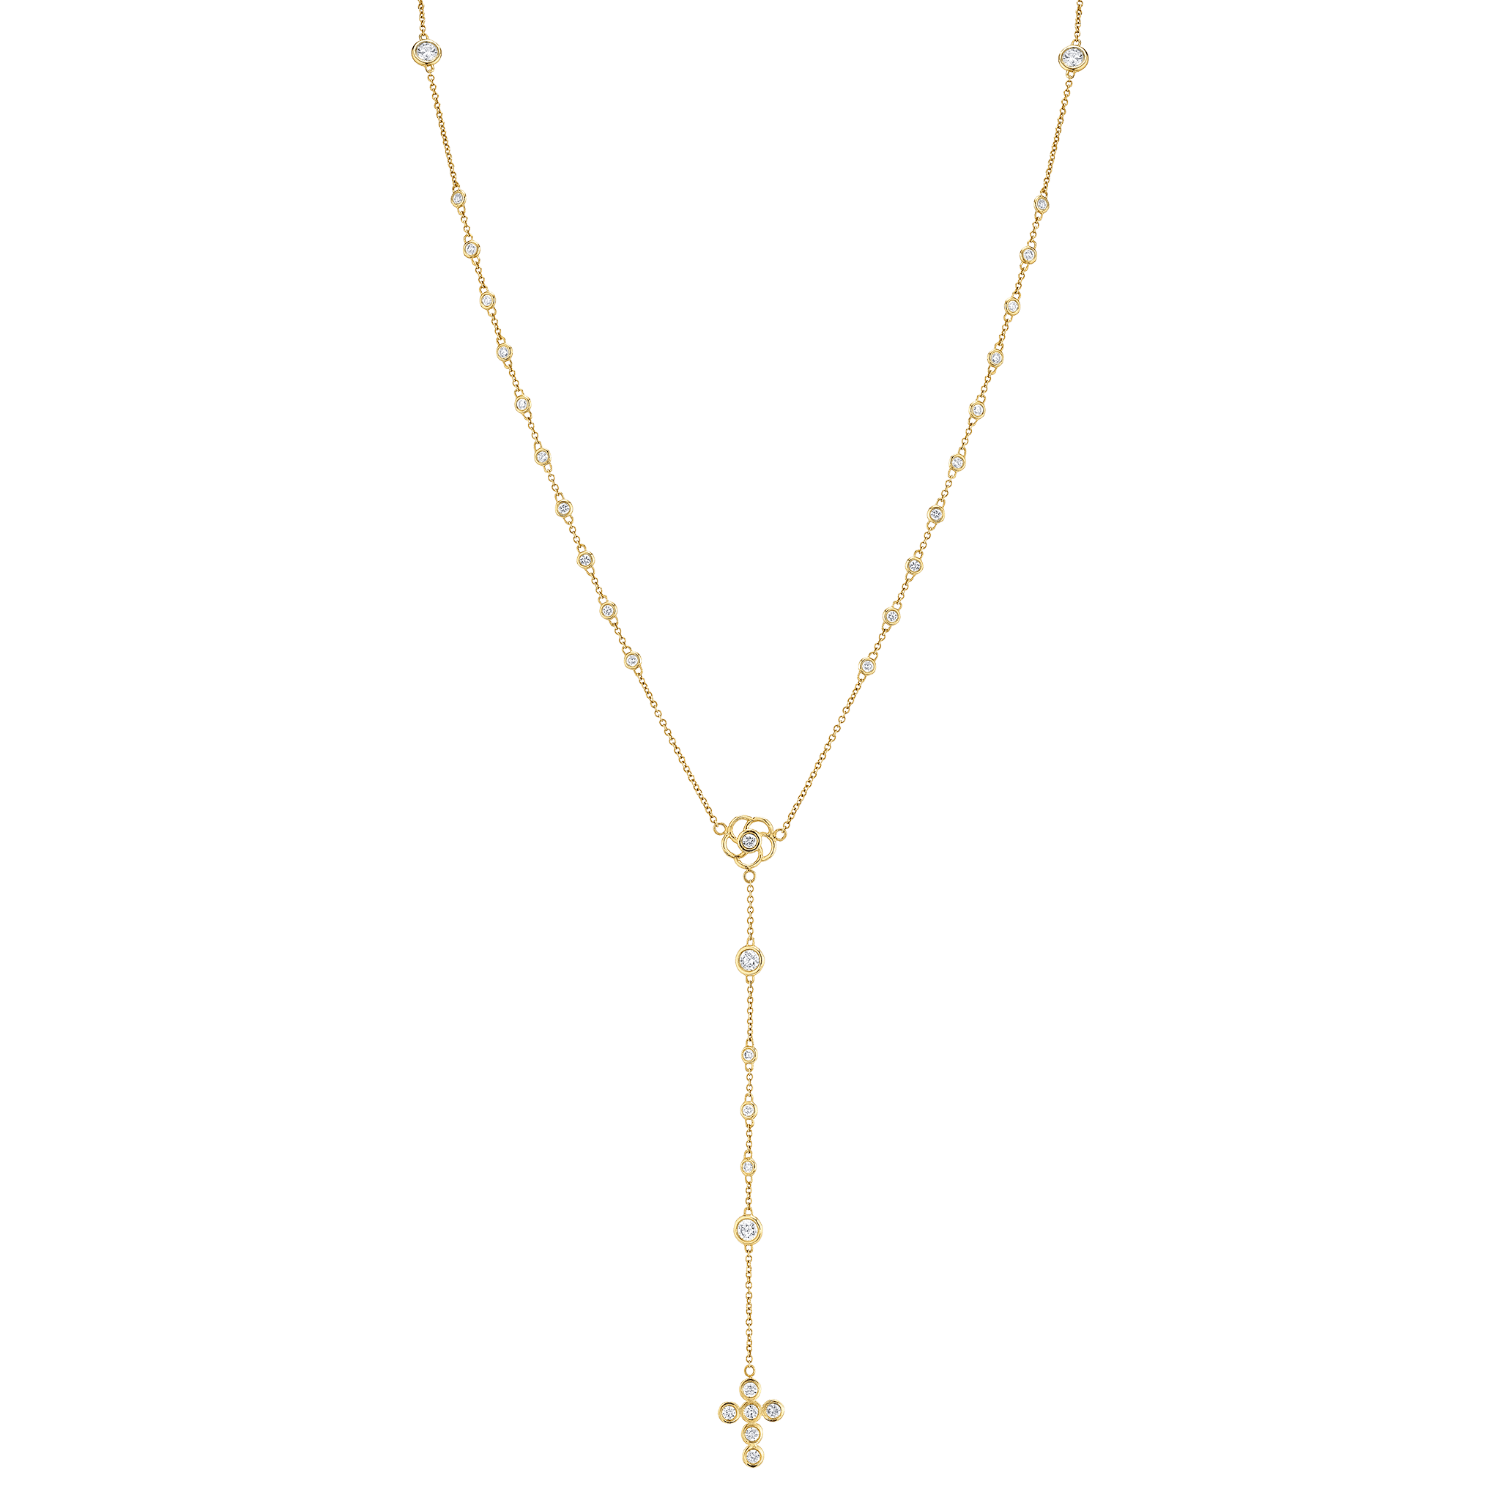 Diamond Rosary Necklace